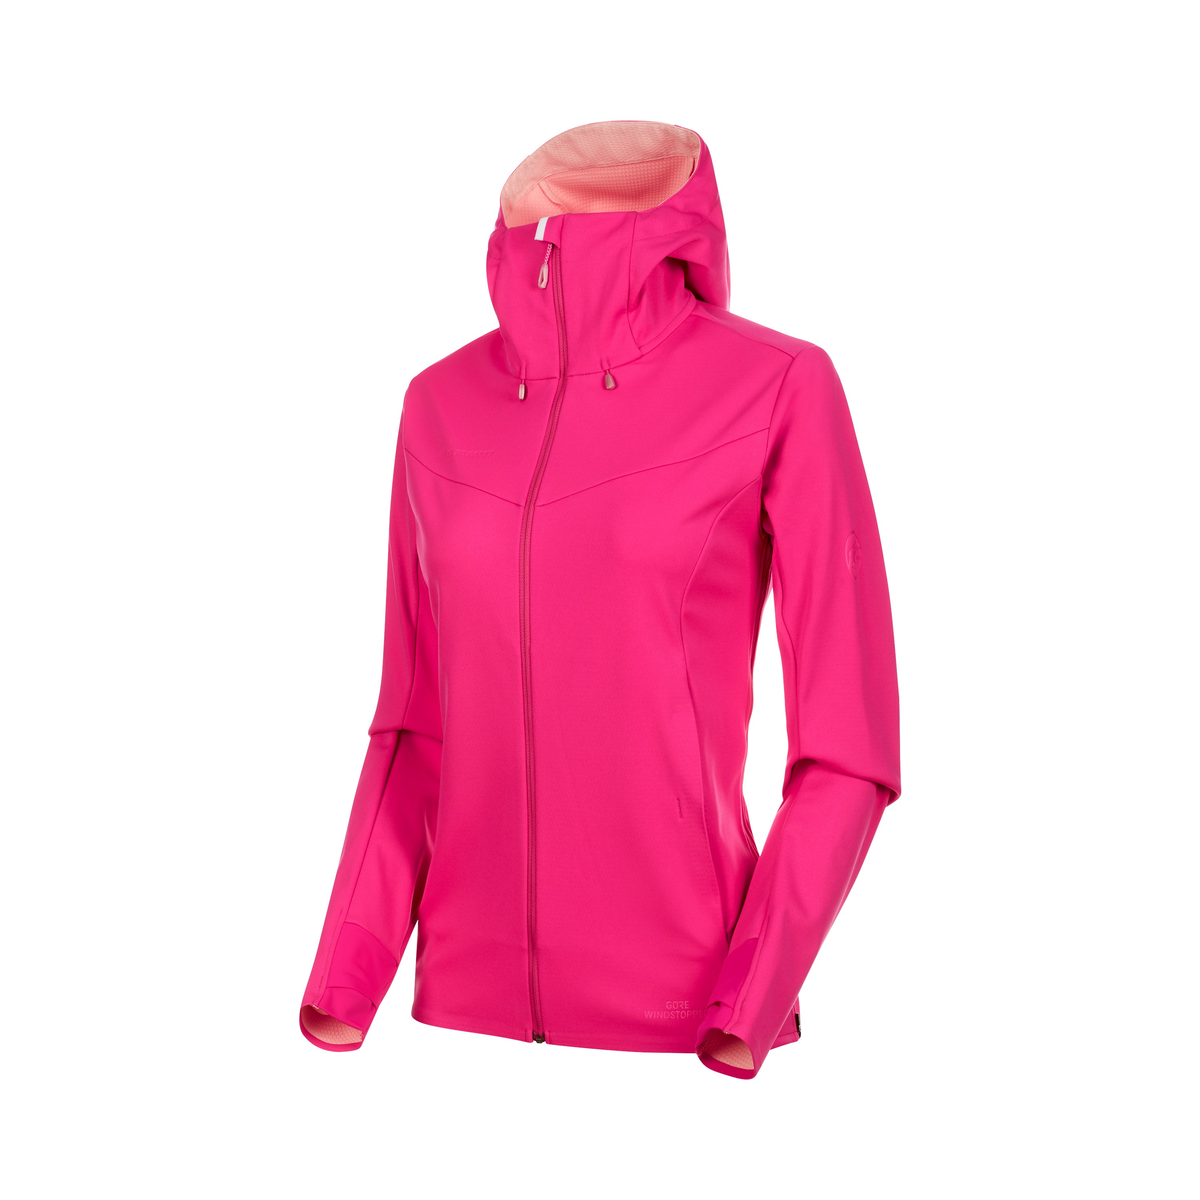 reputable site 196c9 86833 Ultimate V SO Hooded Jacket Women